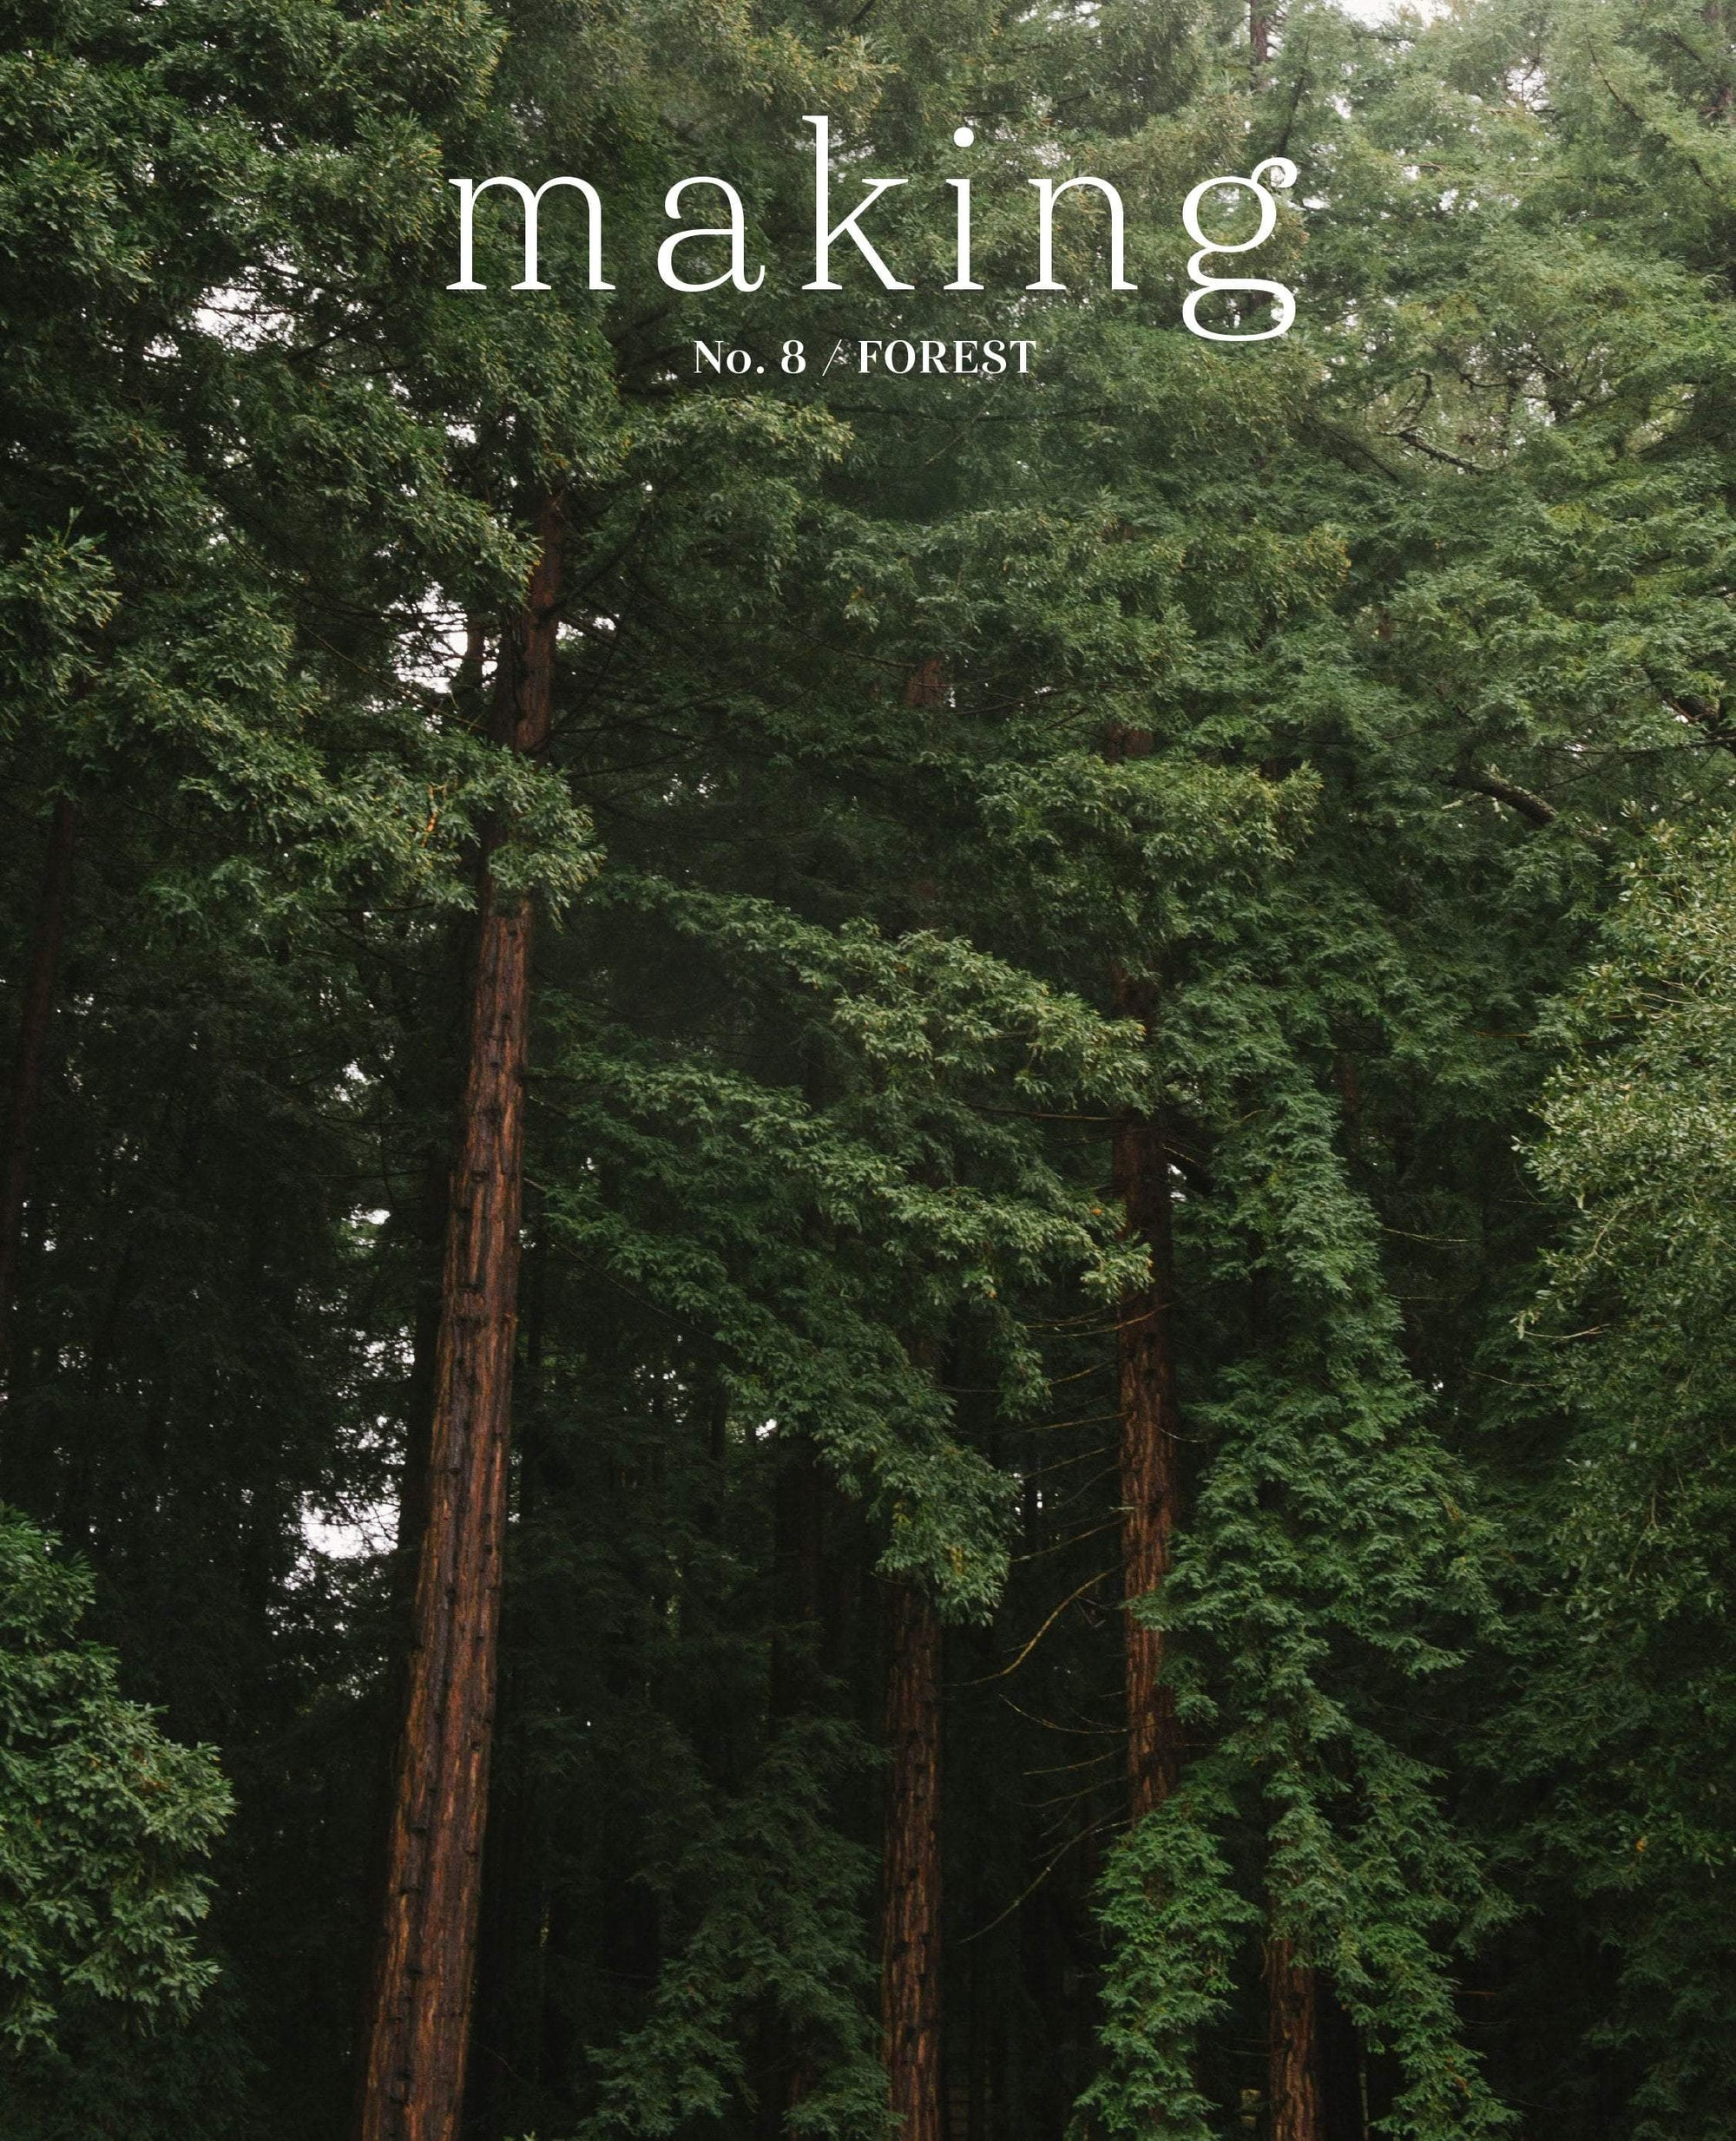 Making Magazine - No. 8 Forest Making Magazine Magazine